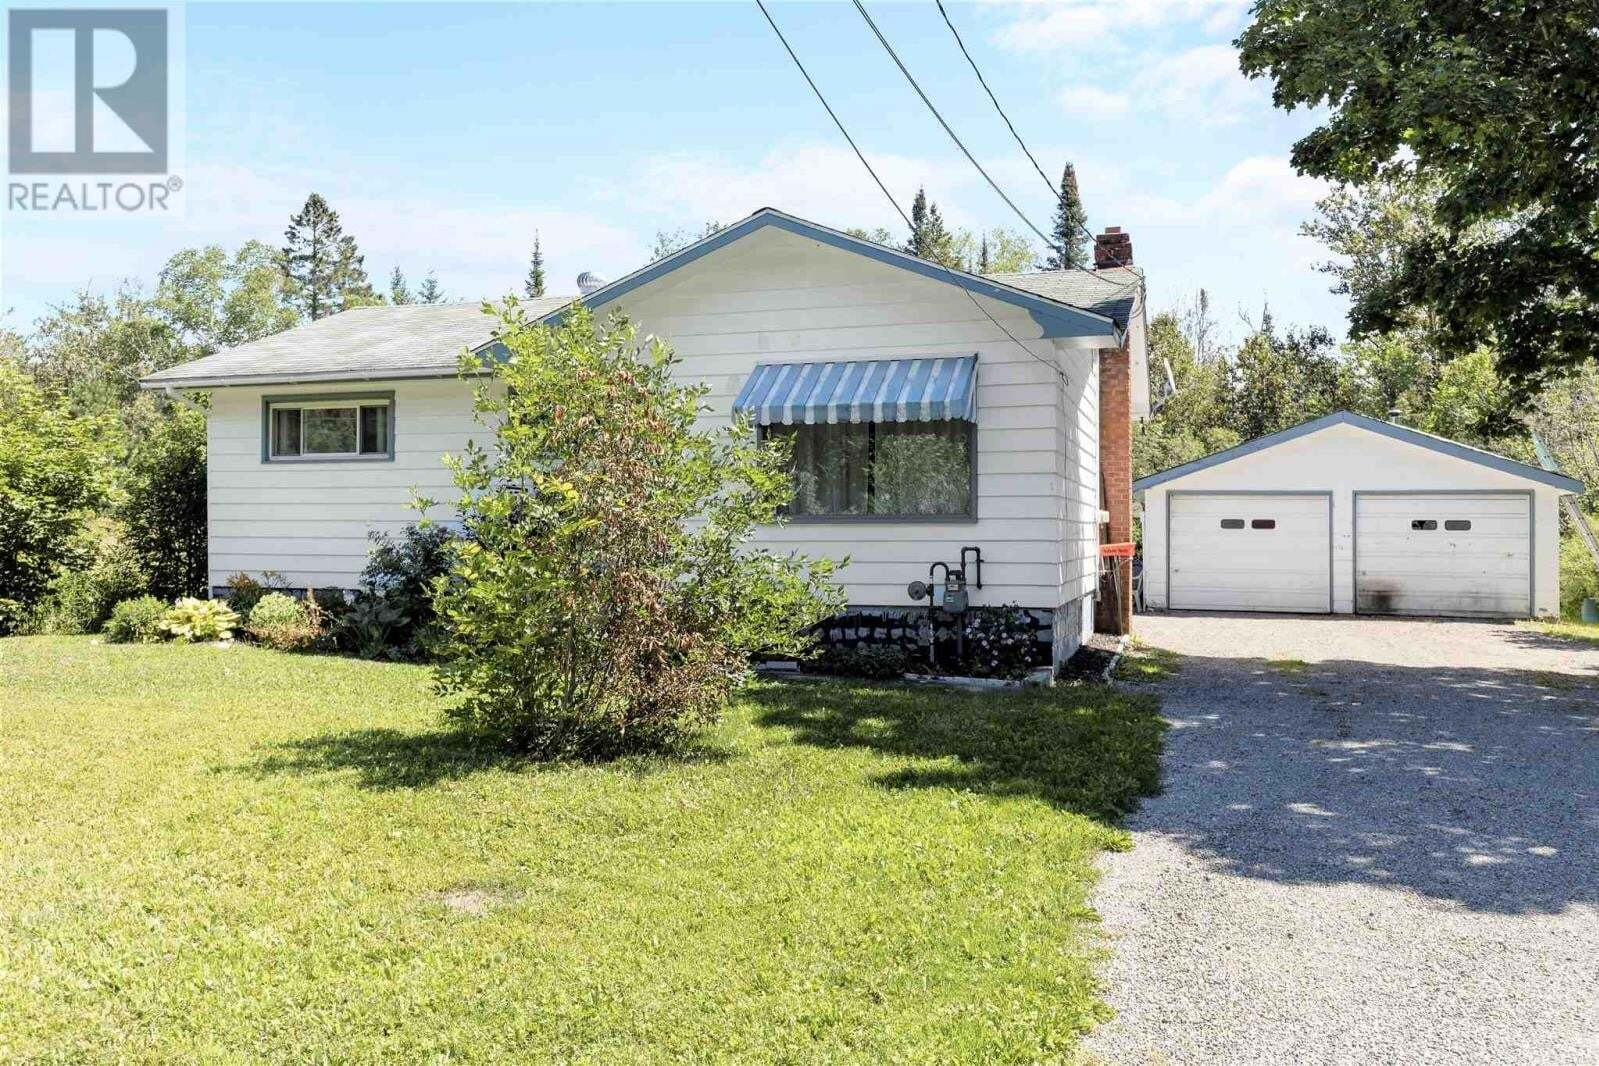 House for sale at 20 Lamming Ave Sault Ste. Marie Ontario - MLS: SM129294